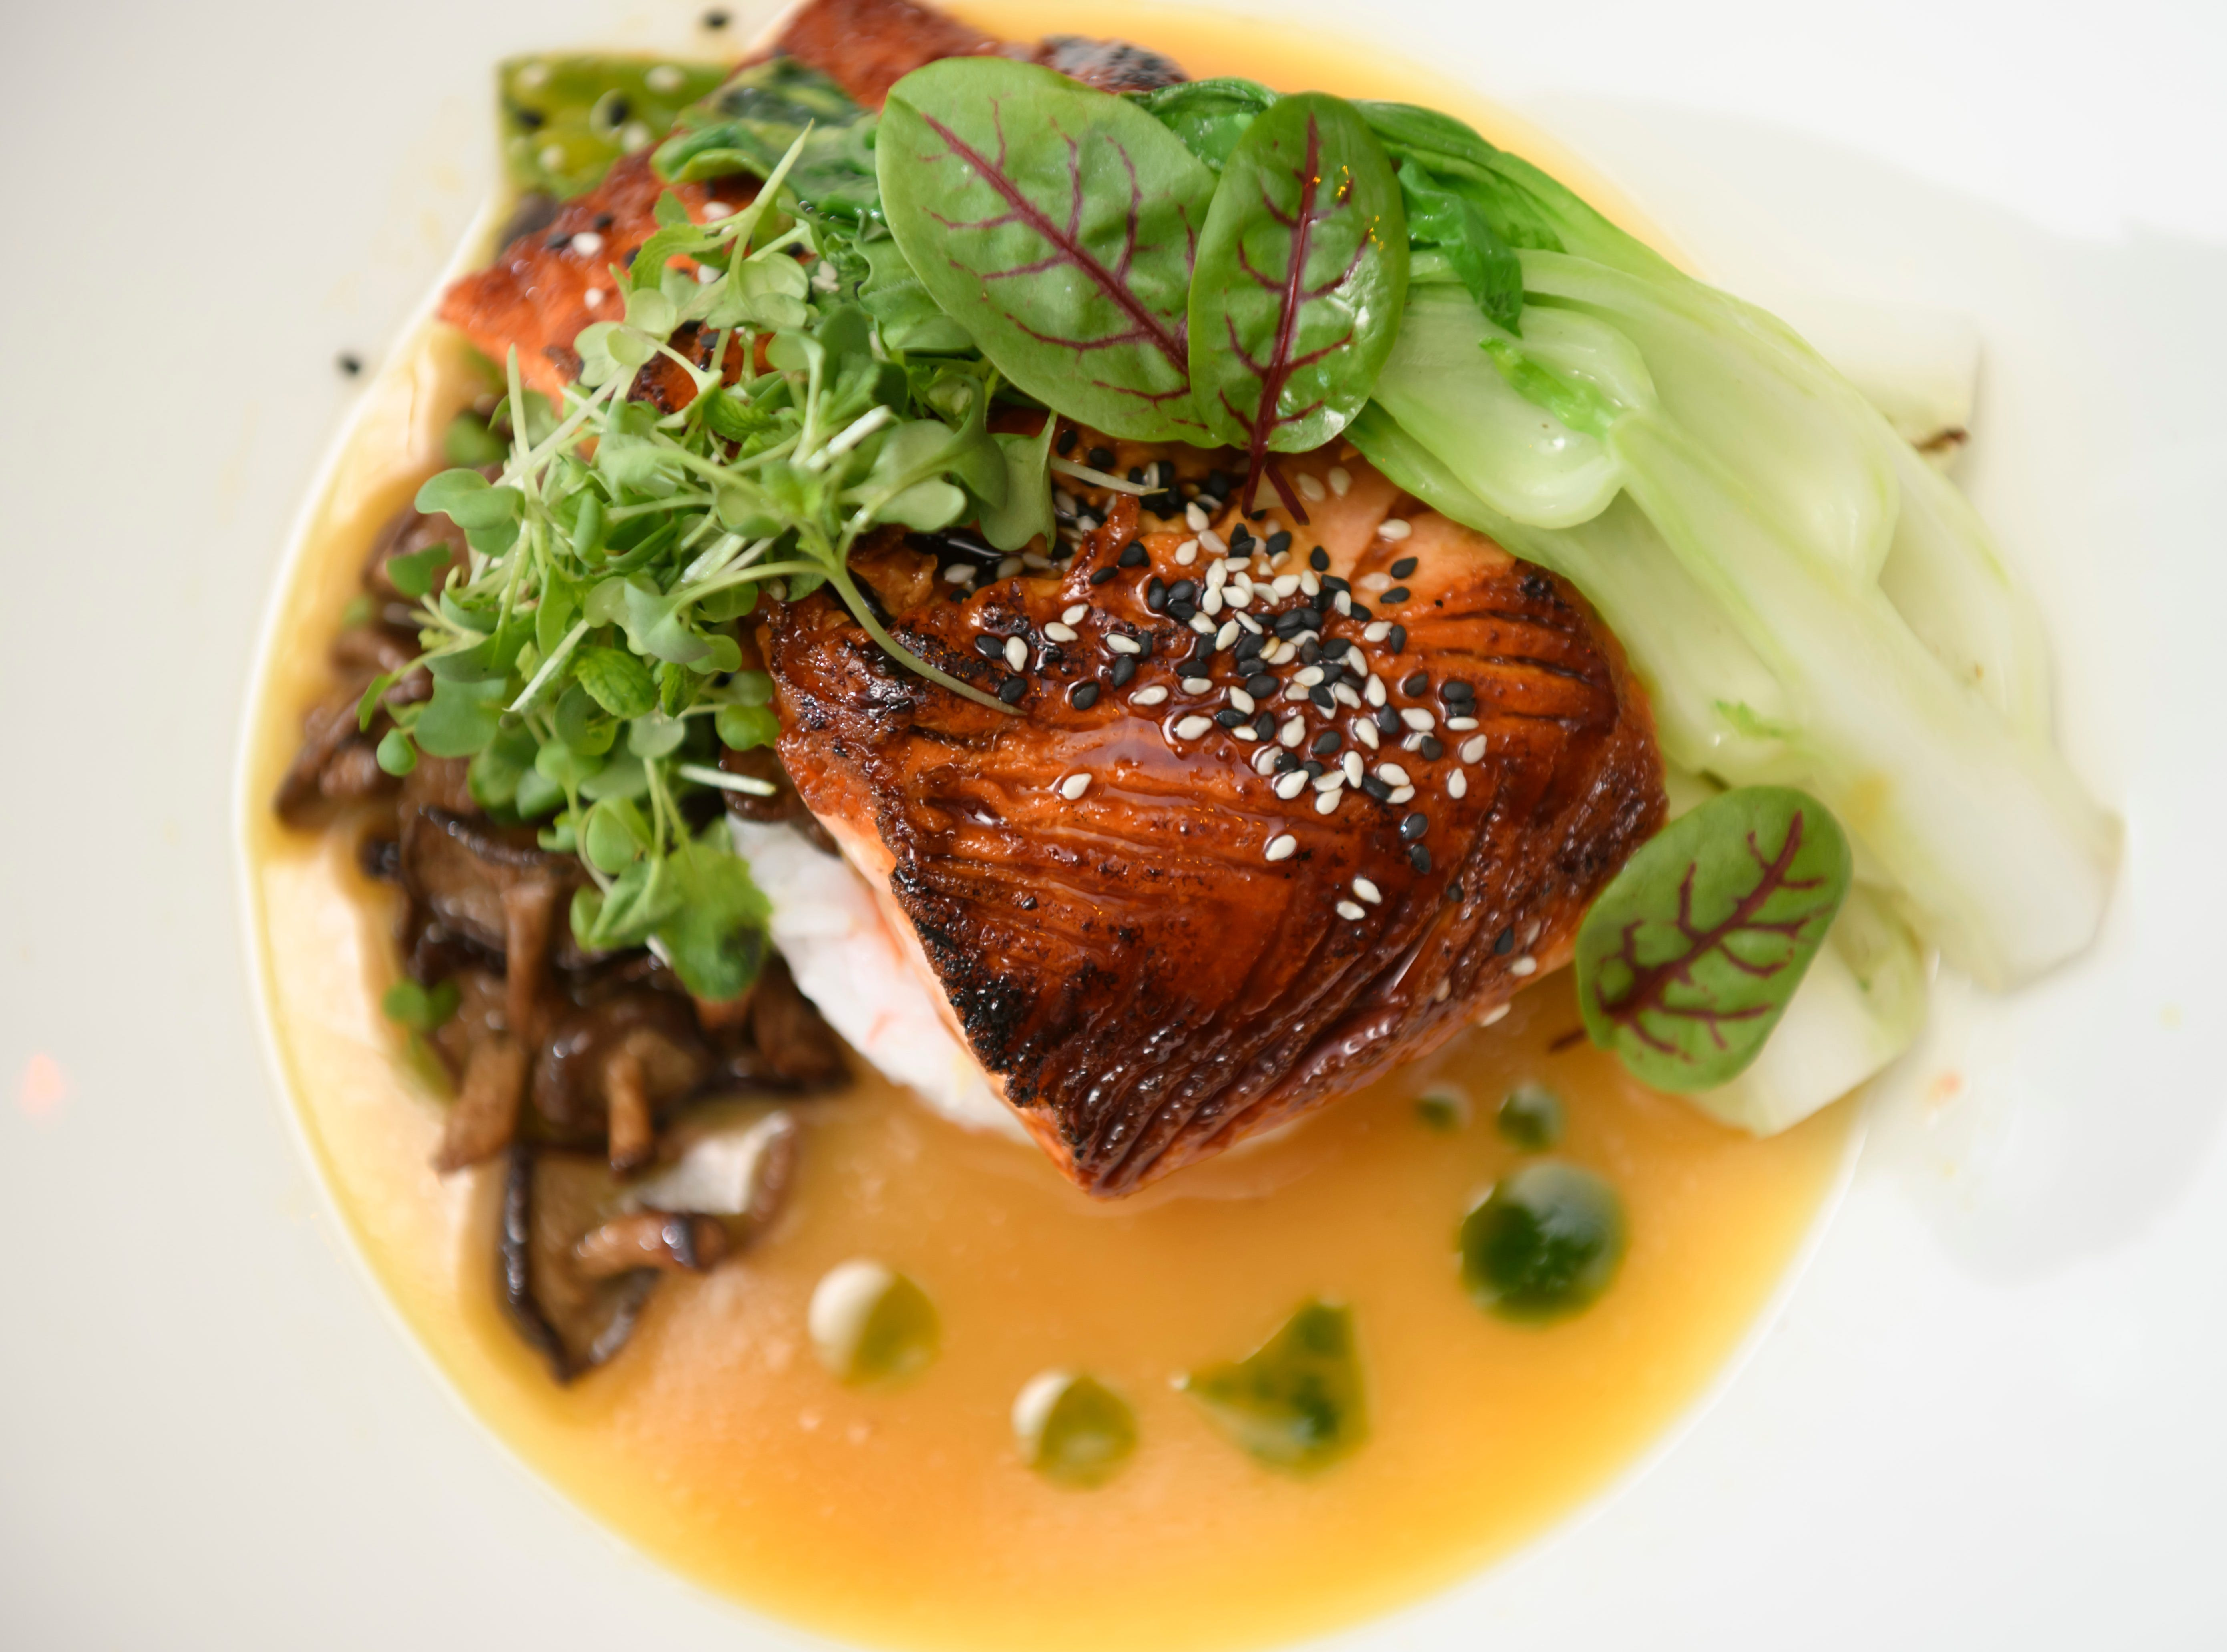 Ponzu glazed Fjord trout with ginger sushi rice cake, bok choy, baby shiitake mushrooms and orange-miso nage is one of the dishes at the new Vinotecca wine bar and restaurant in Birmingham, May 17, 2018.